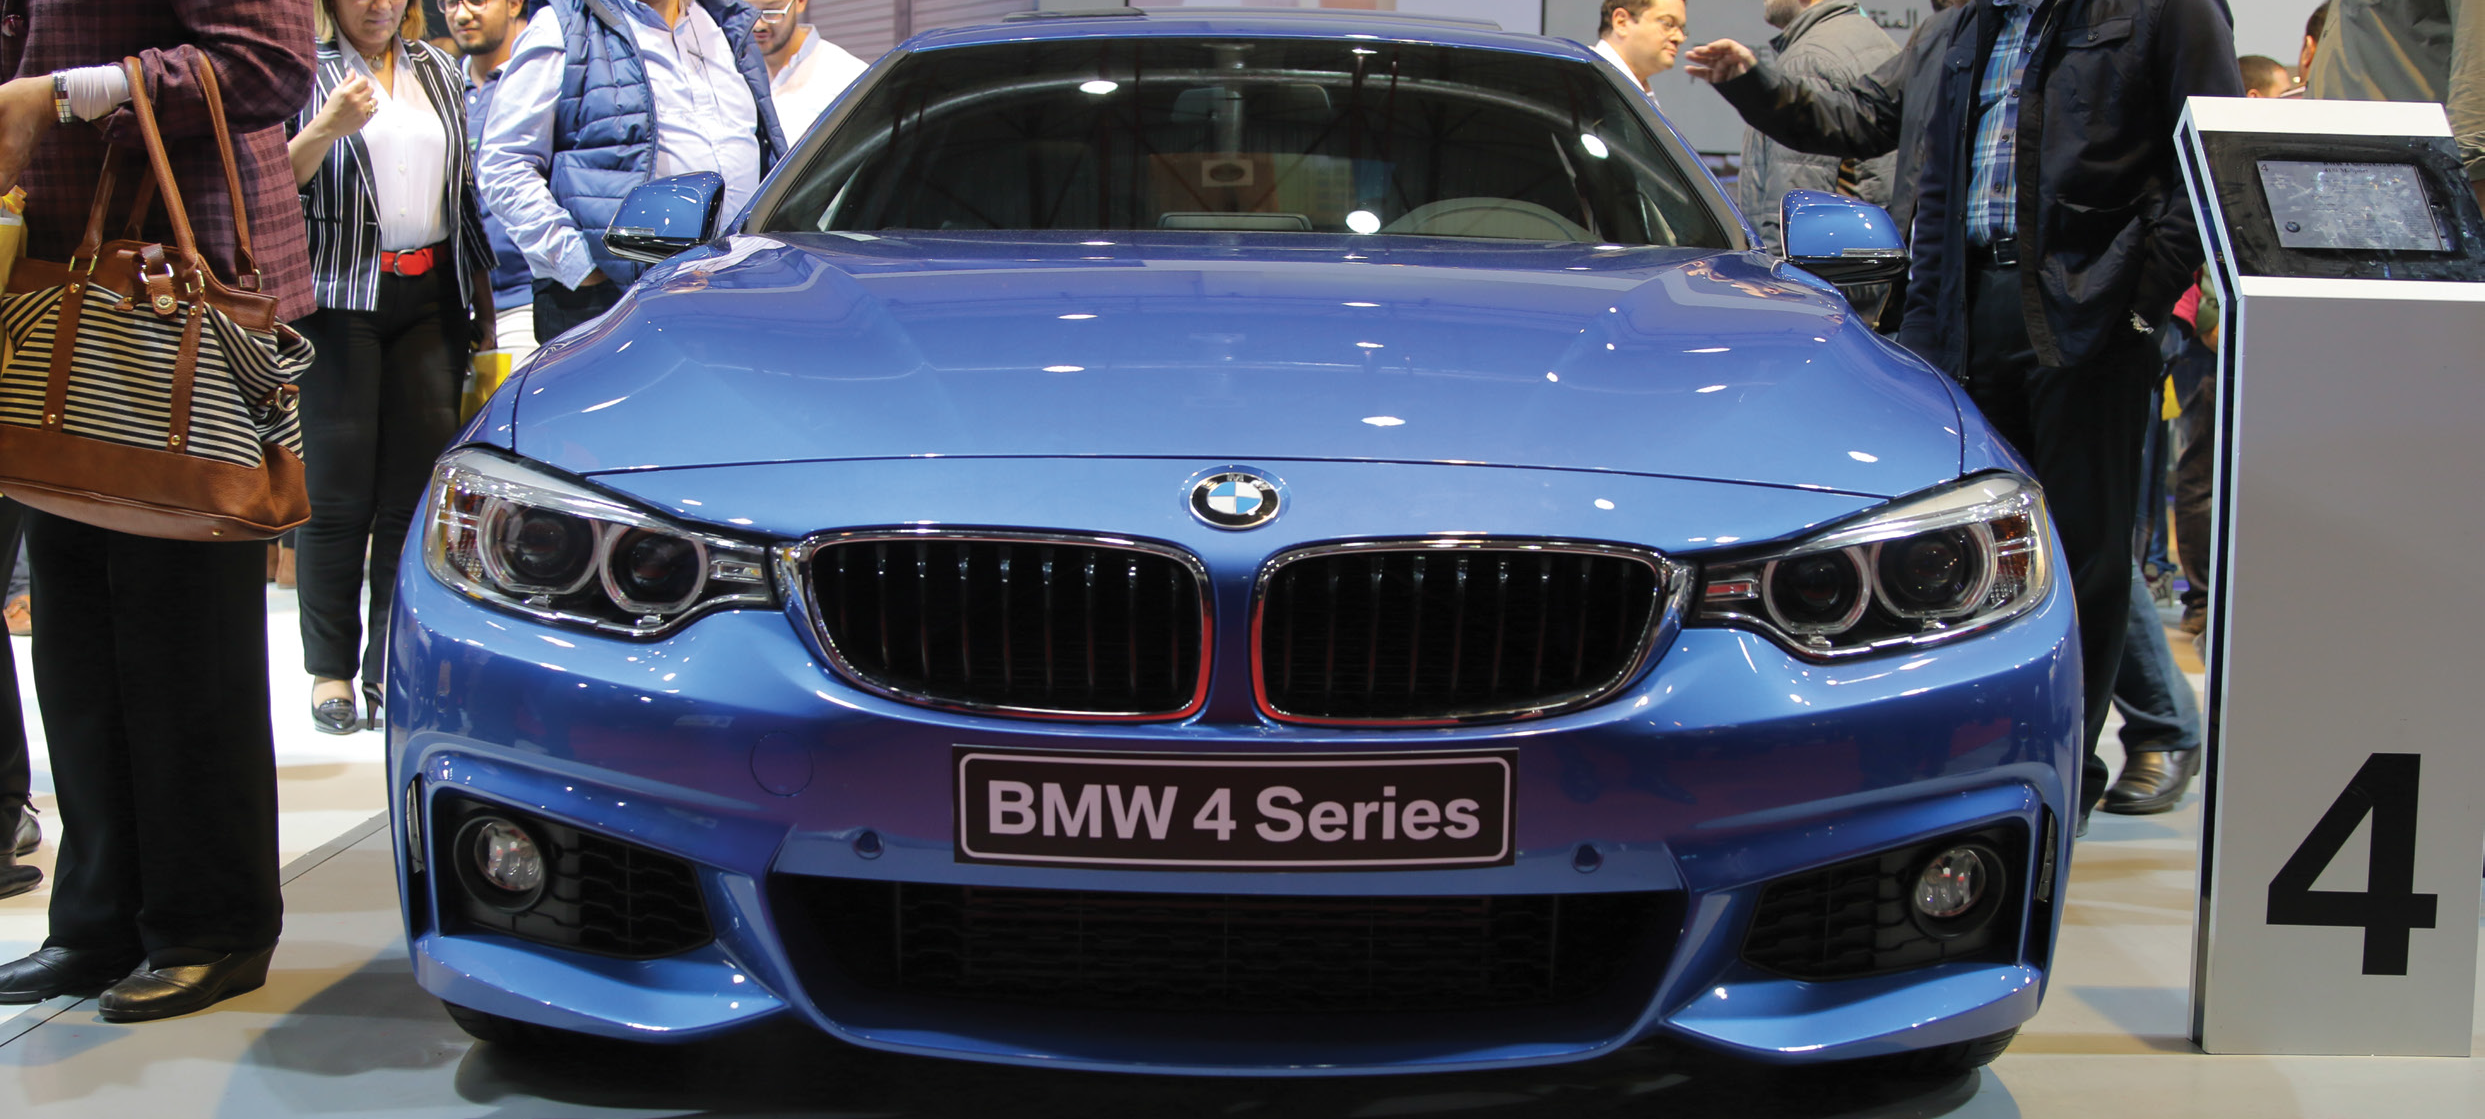 Bmw Egypt All News And Events